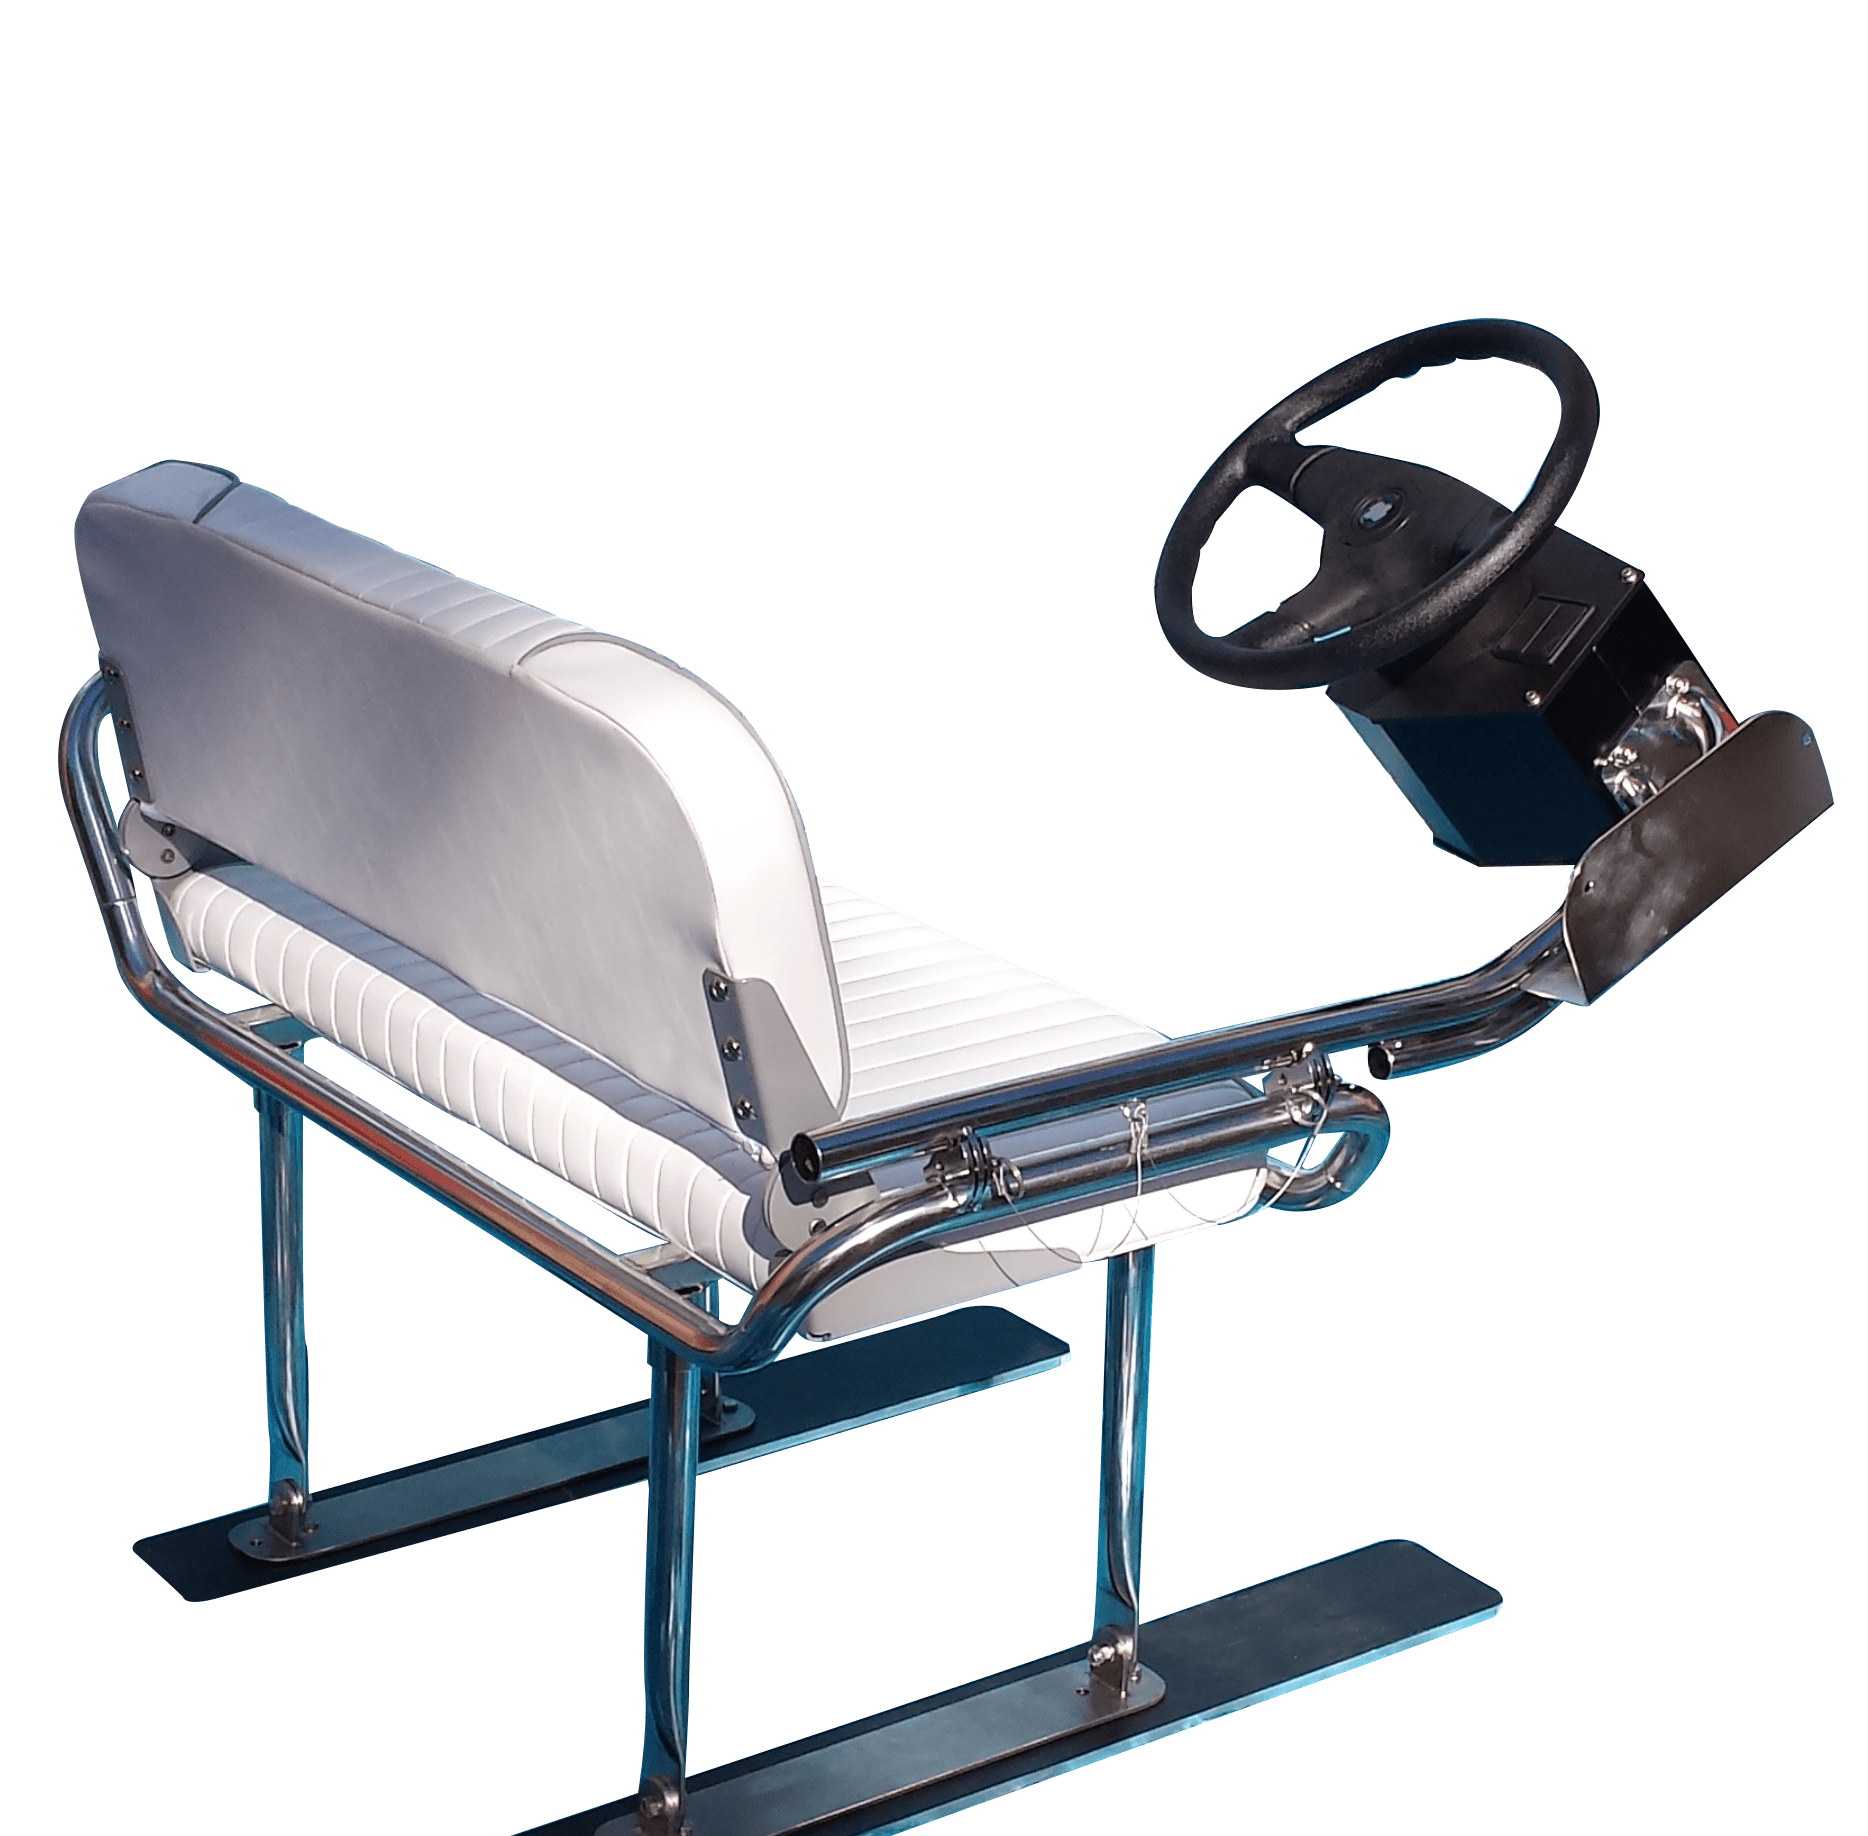 inflatable lifting chair swivel joint st croix davit euro helm seating